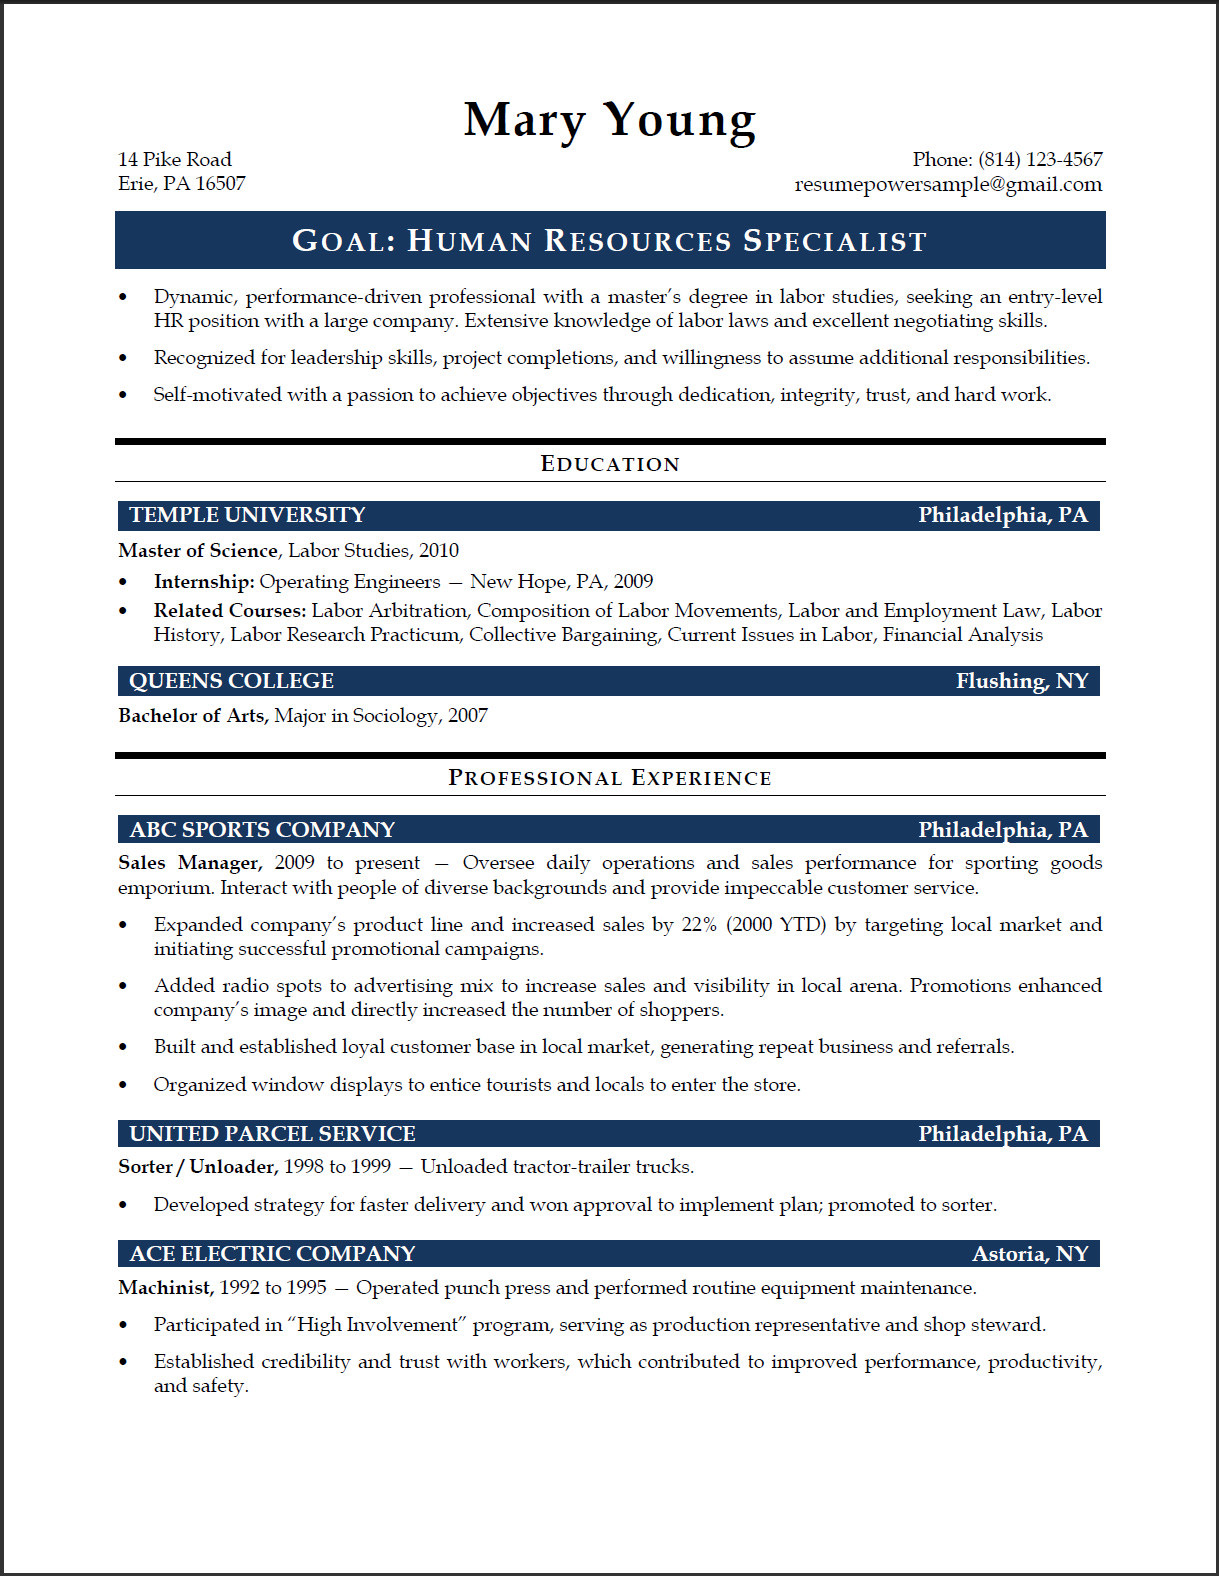 human resources specialist sample resume - Sample Resume For Hr Assistant Position